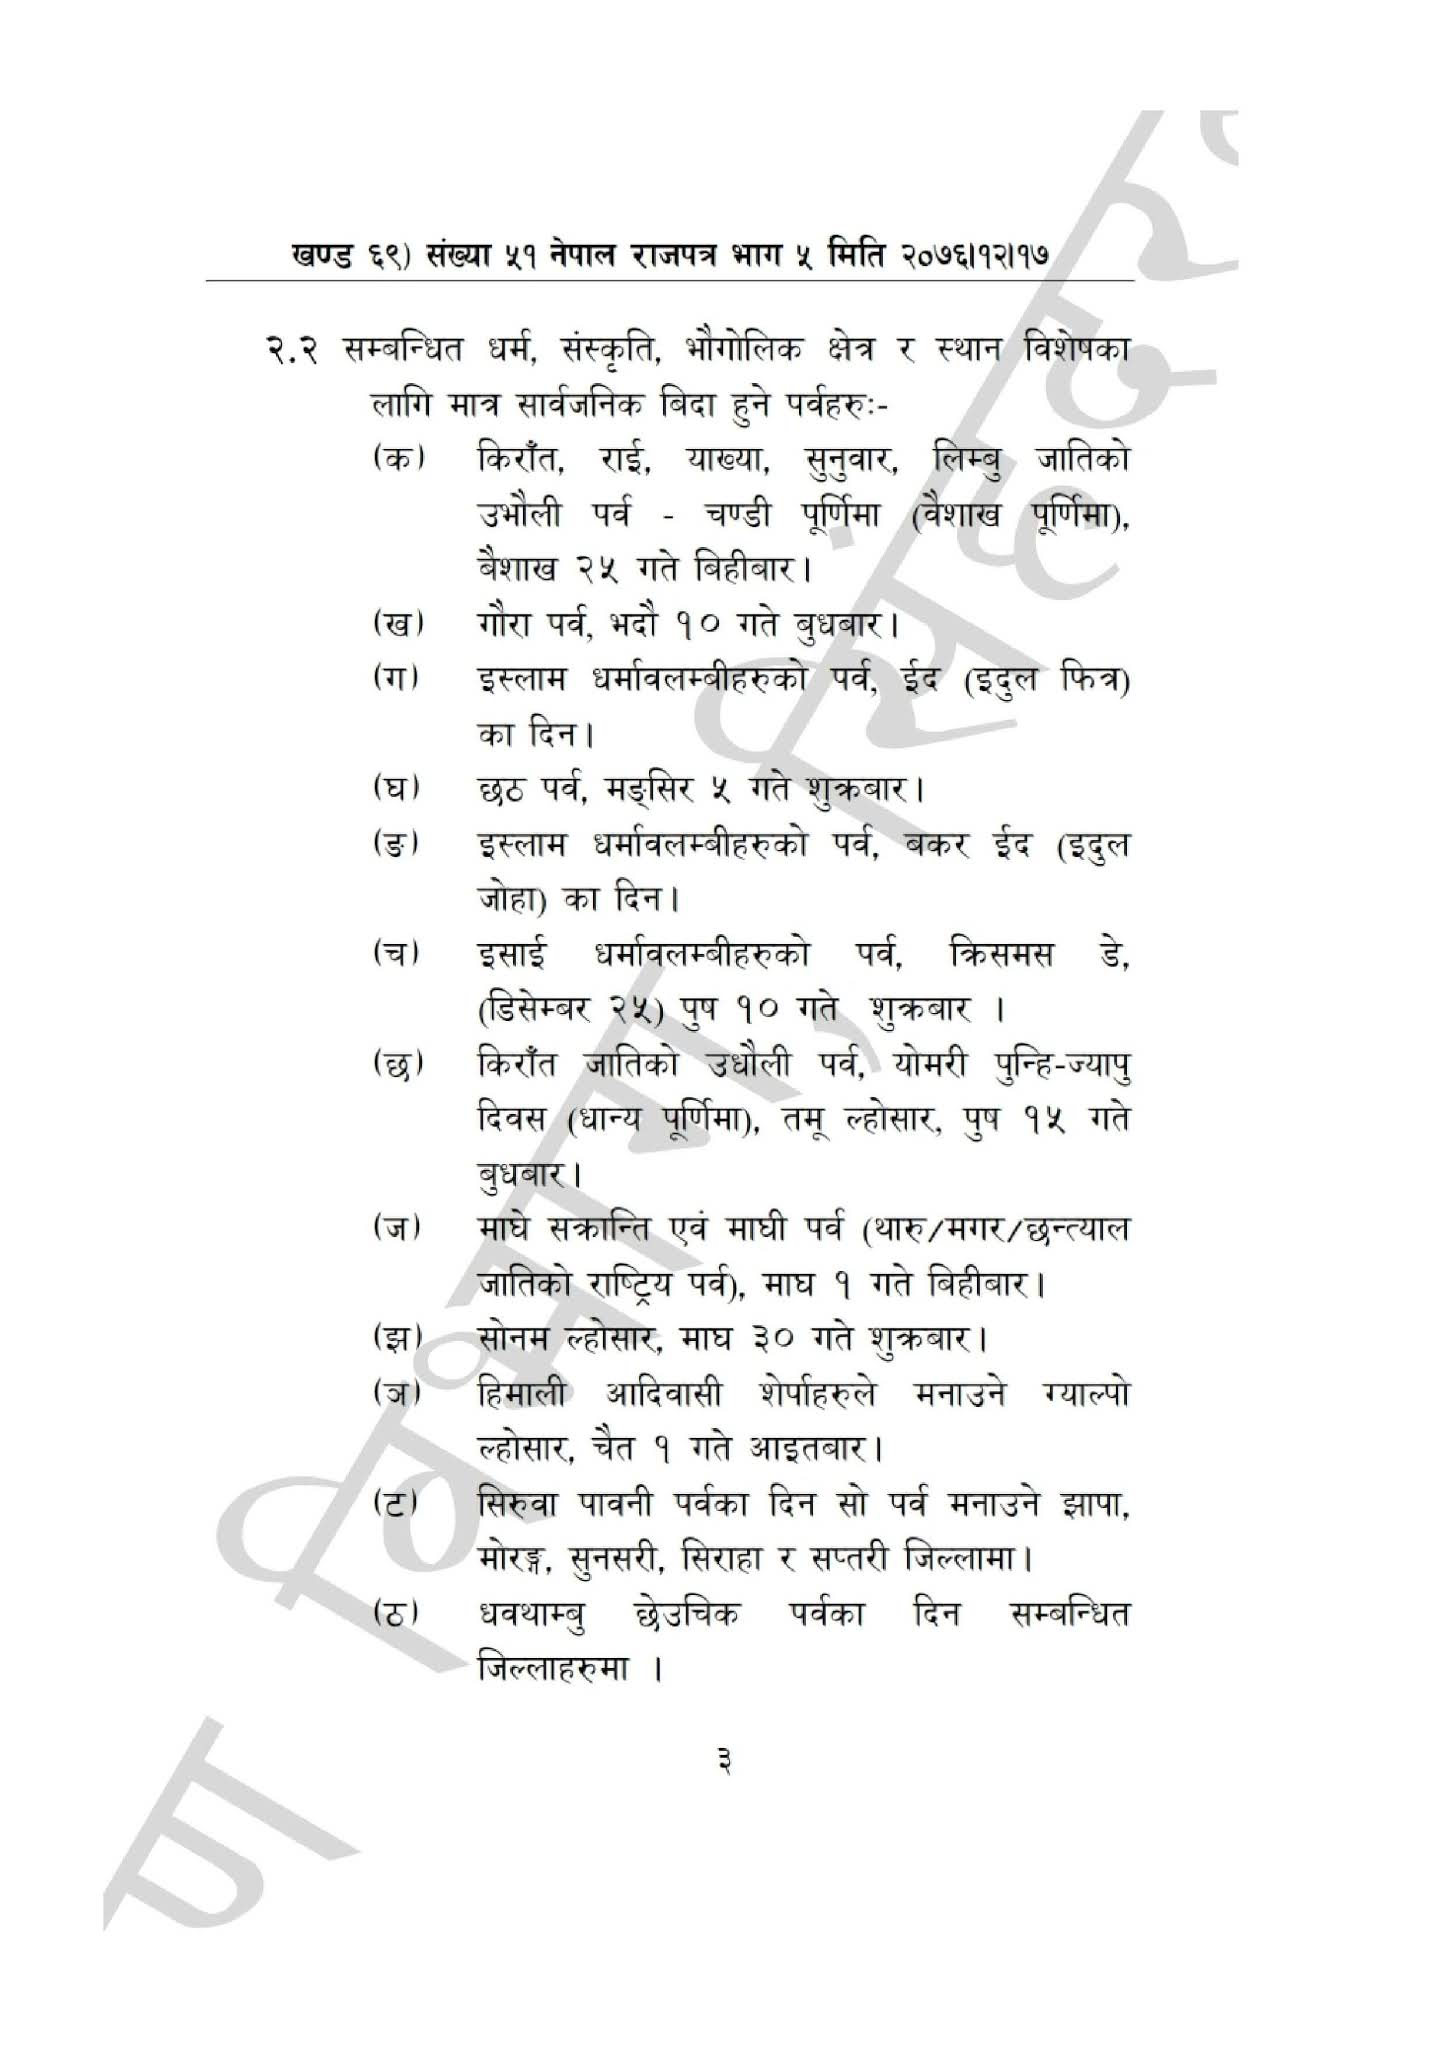 List of Public Holidays in Nepal for 2077